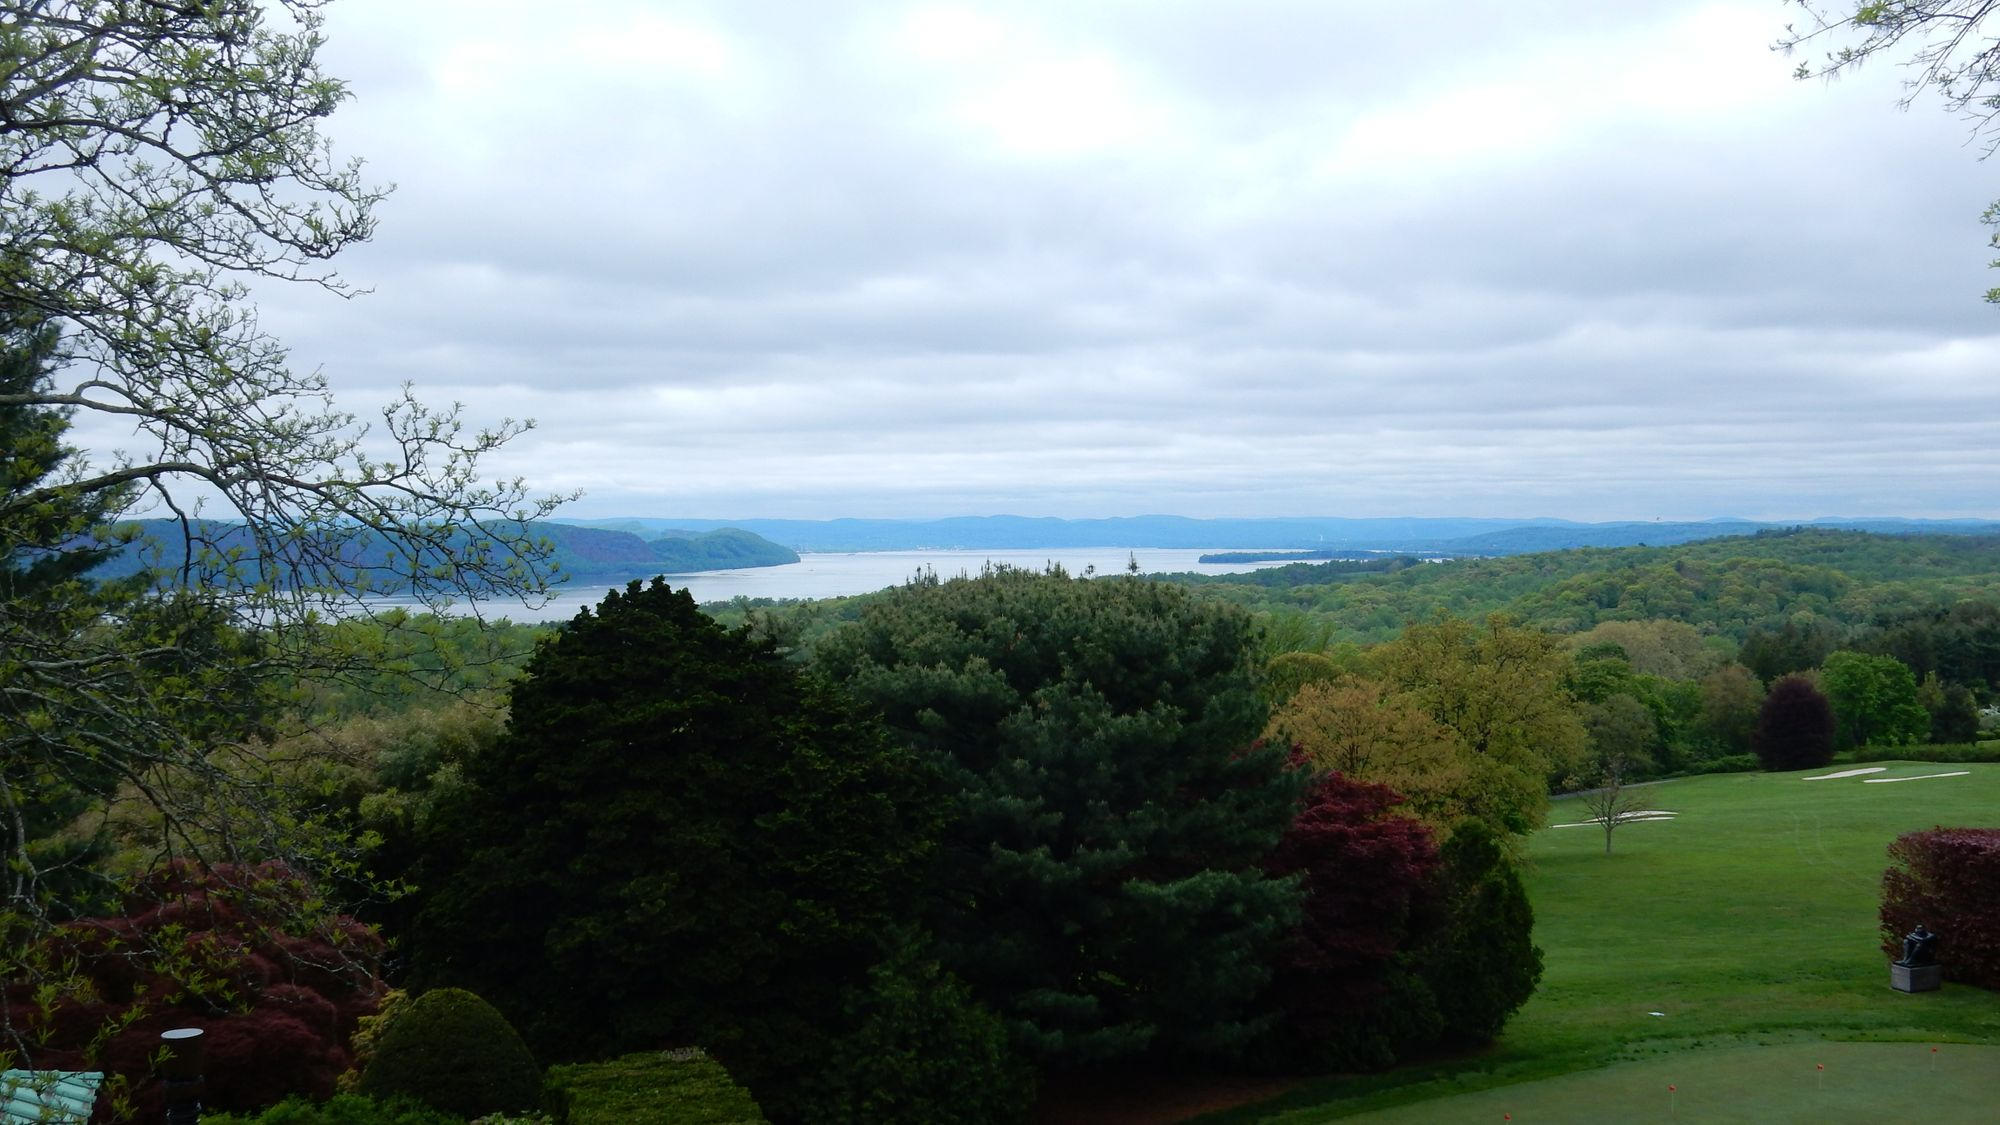 10 Things To Do Outdoors During A Long Weekend Or Day Trip In Westchester, NY